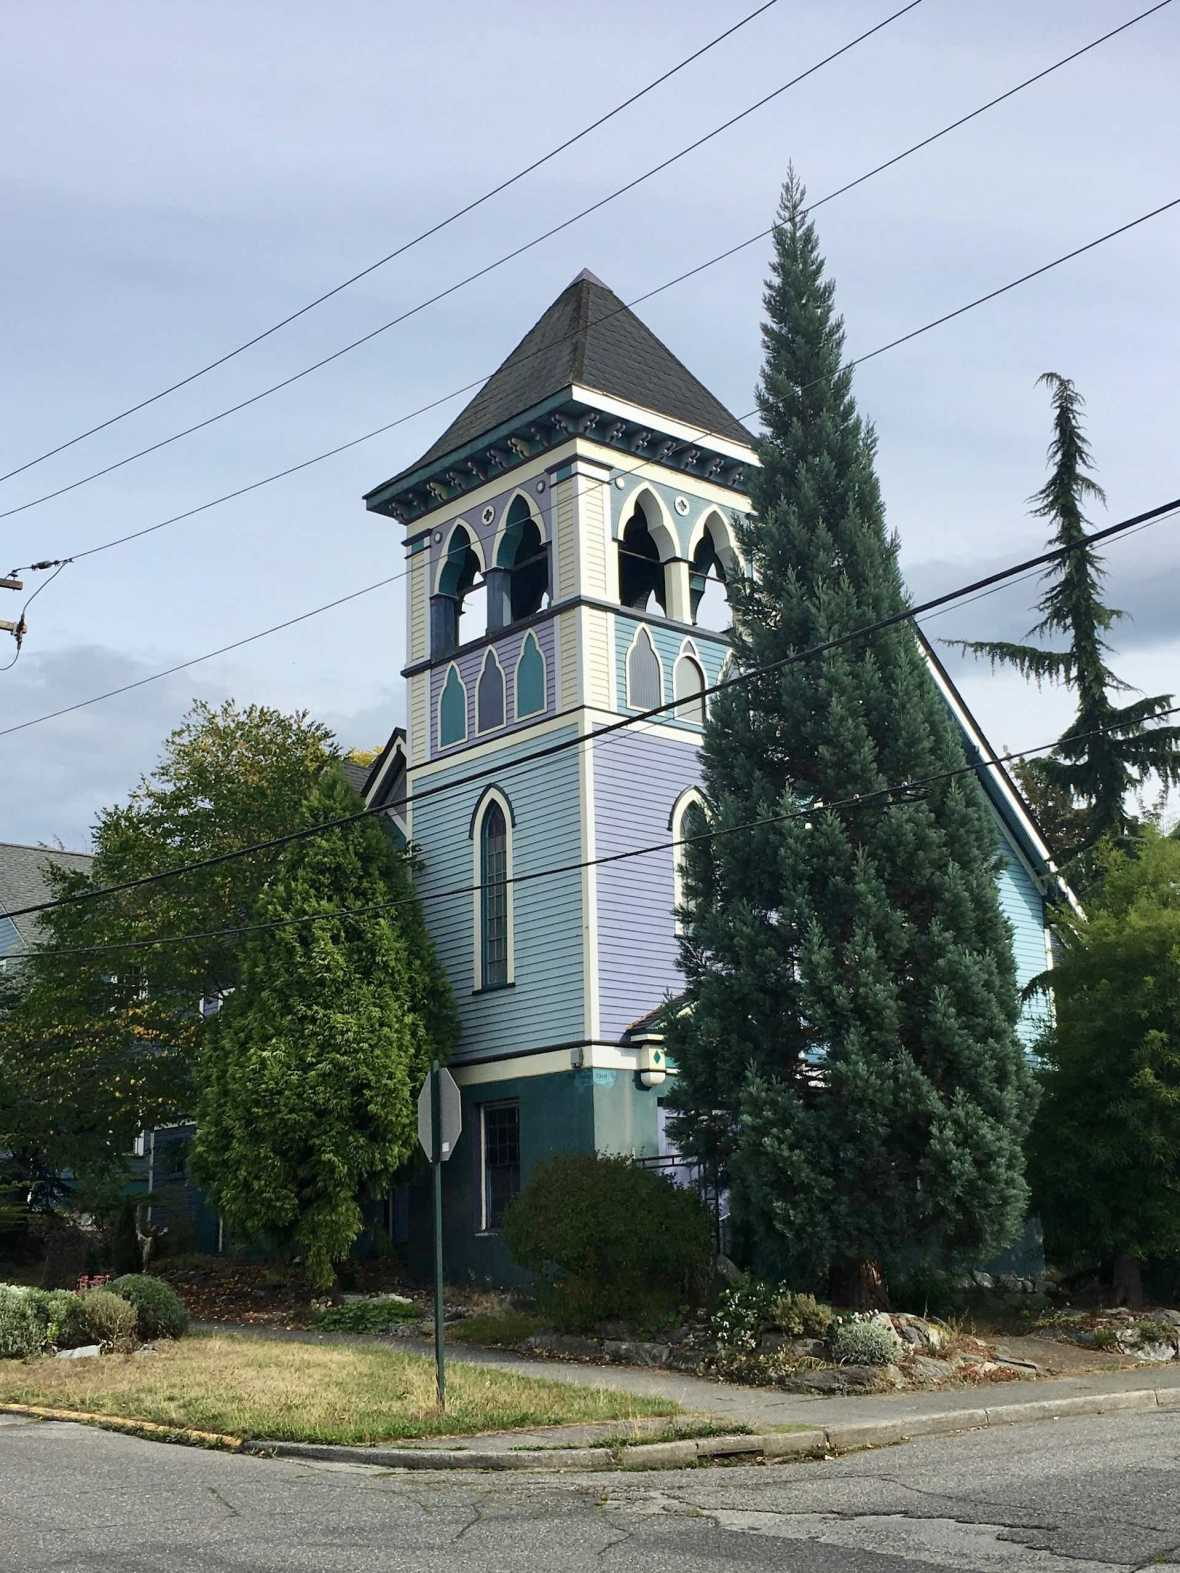 Colorful historic Bellingham, Washington church